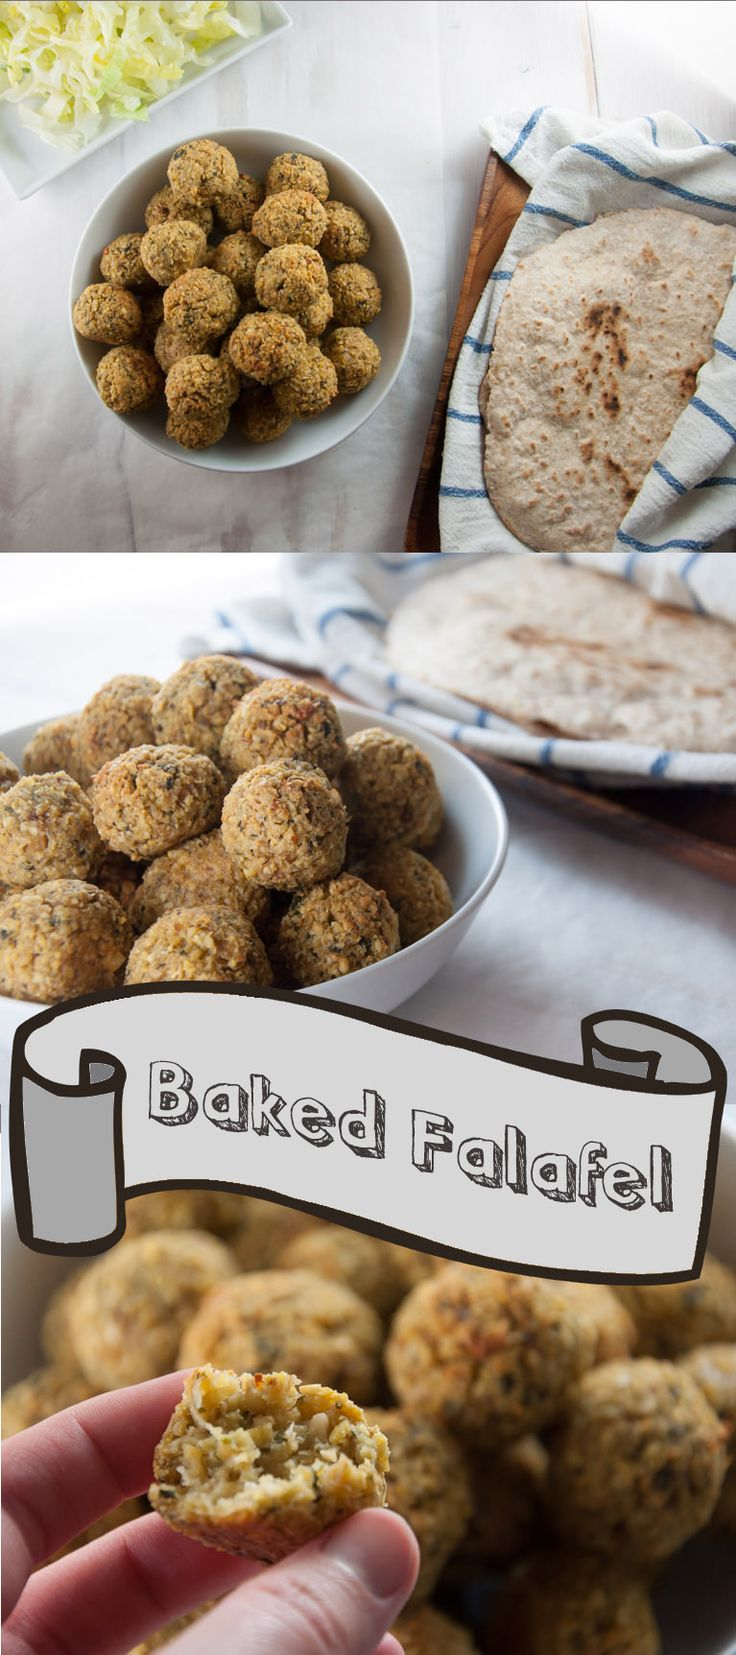 #vegan Oven-Baked Falafel. #gluten-free Doesn't this look JUST AMAZING!?!?